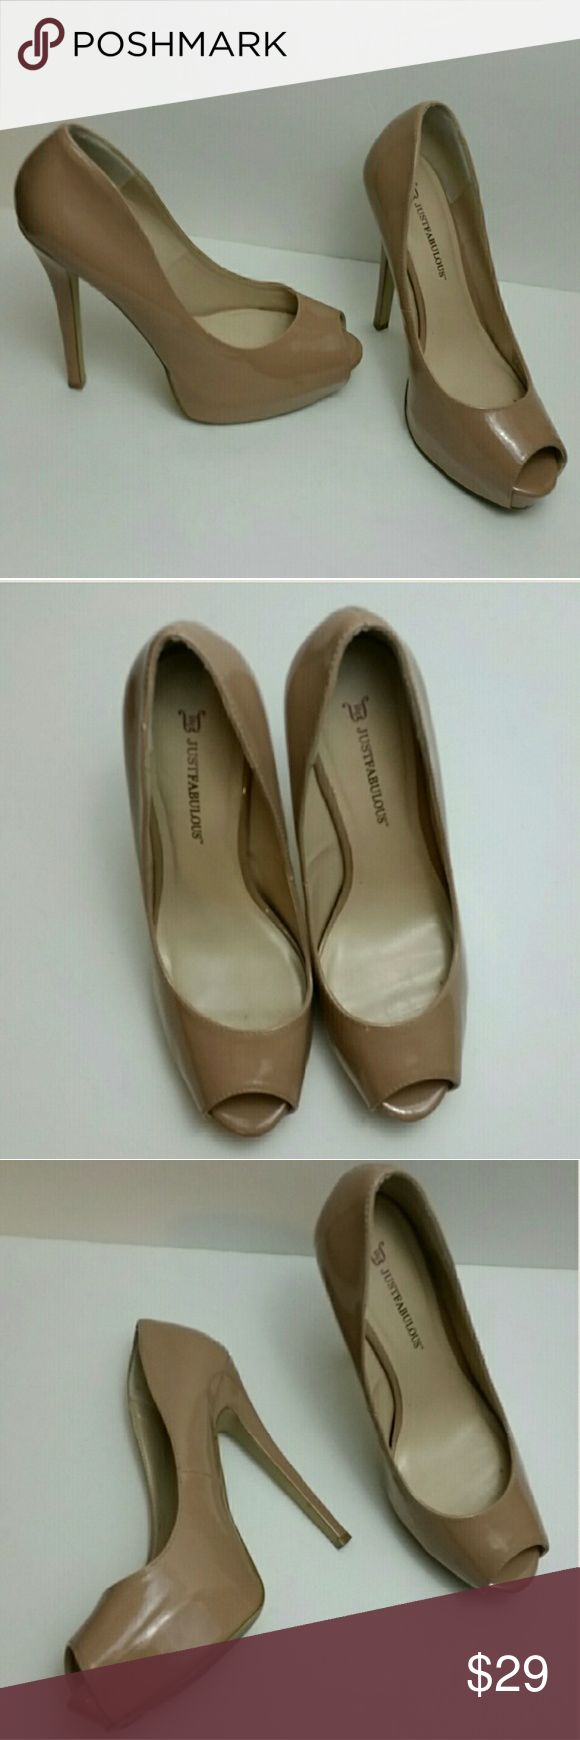 Just Fab Peep Toe Pumps Just Fab nude color peep toe patent leather pumps size 9 Excellent used condition, minimal wear on soles Shoes Heels